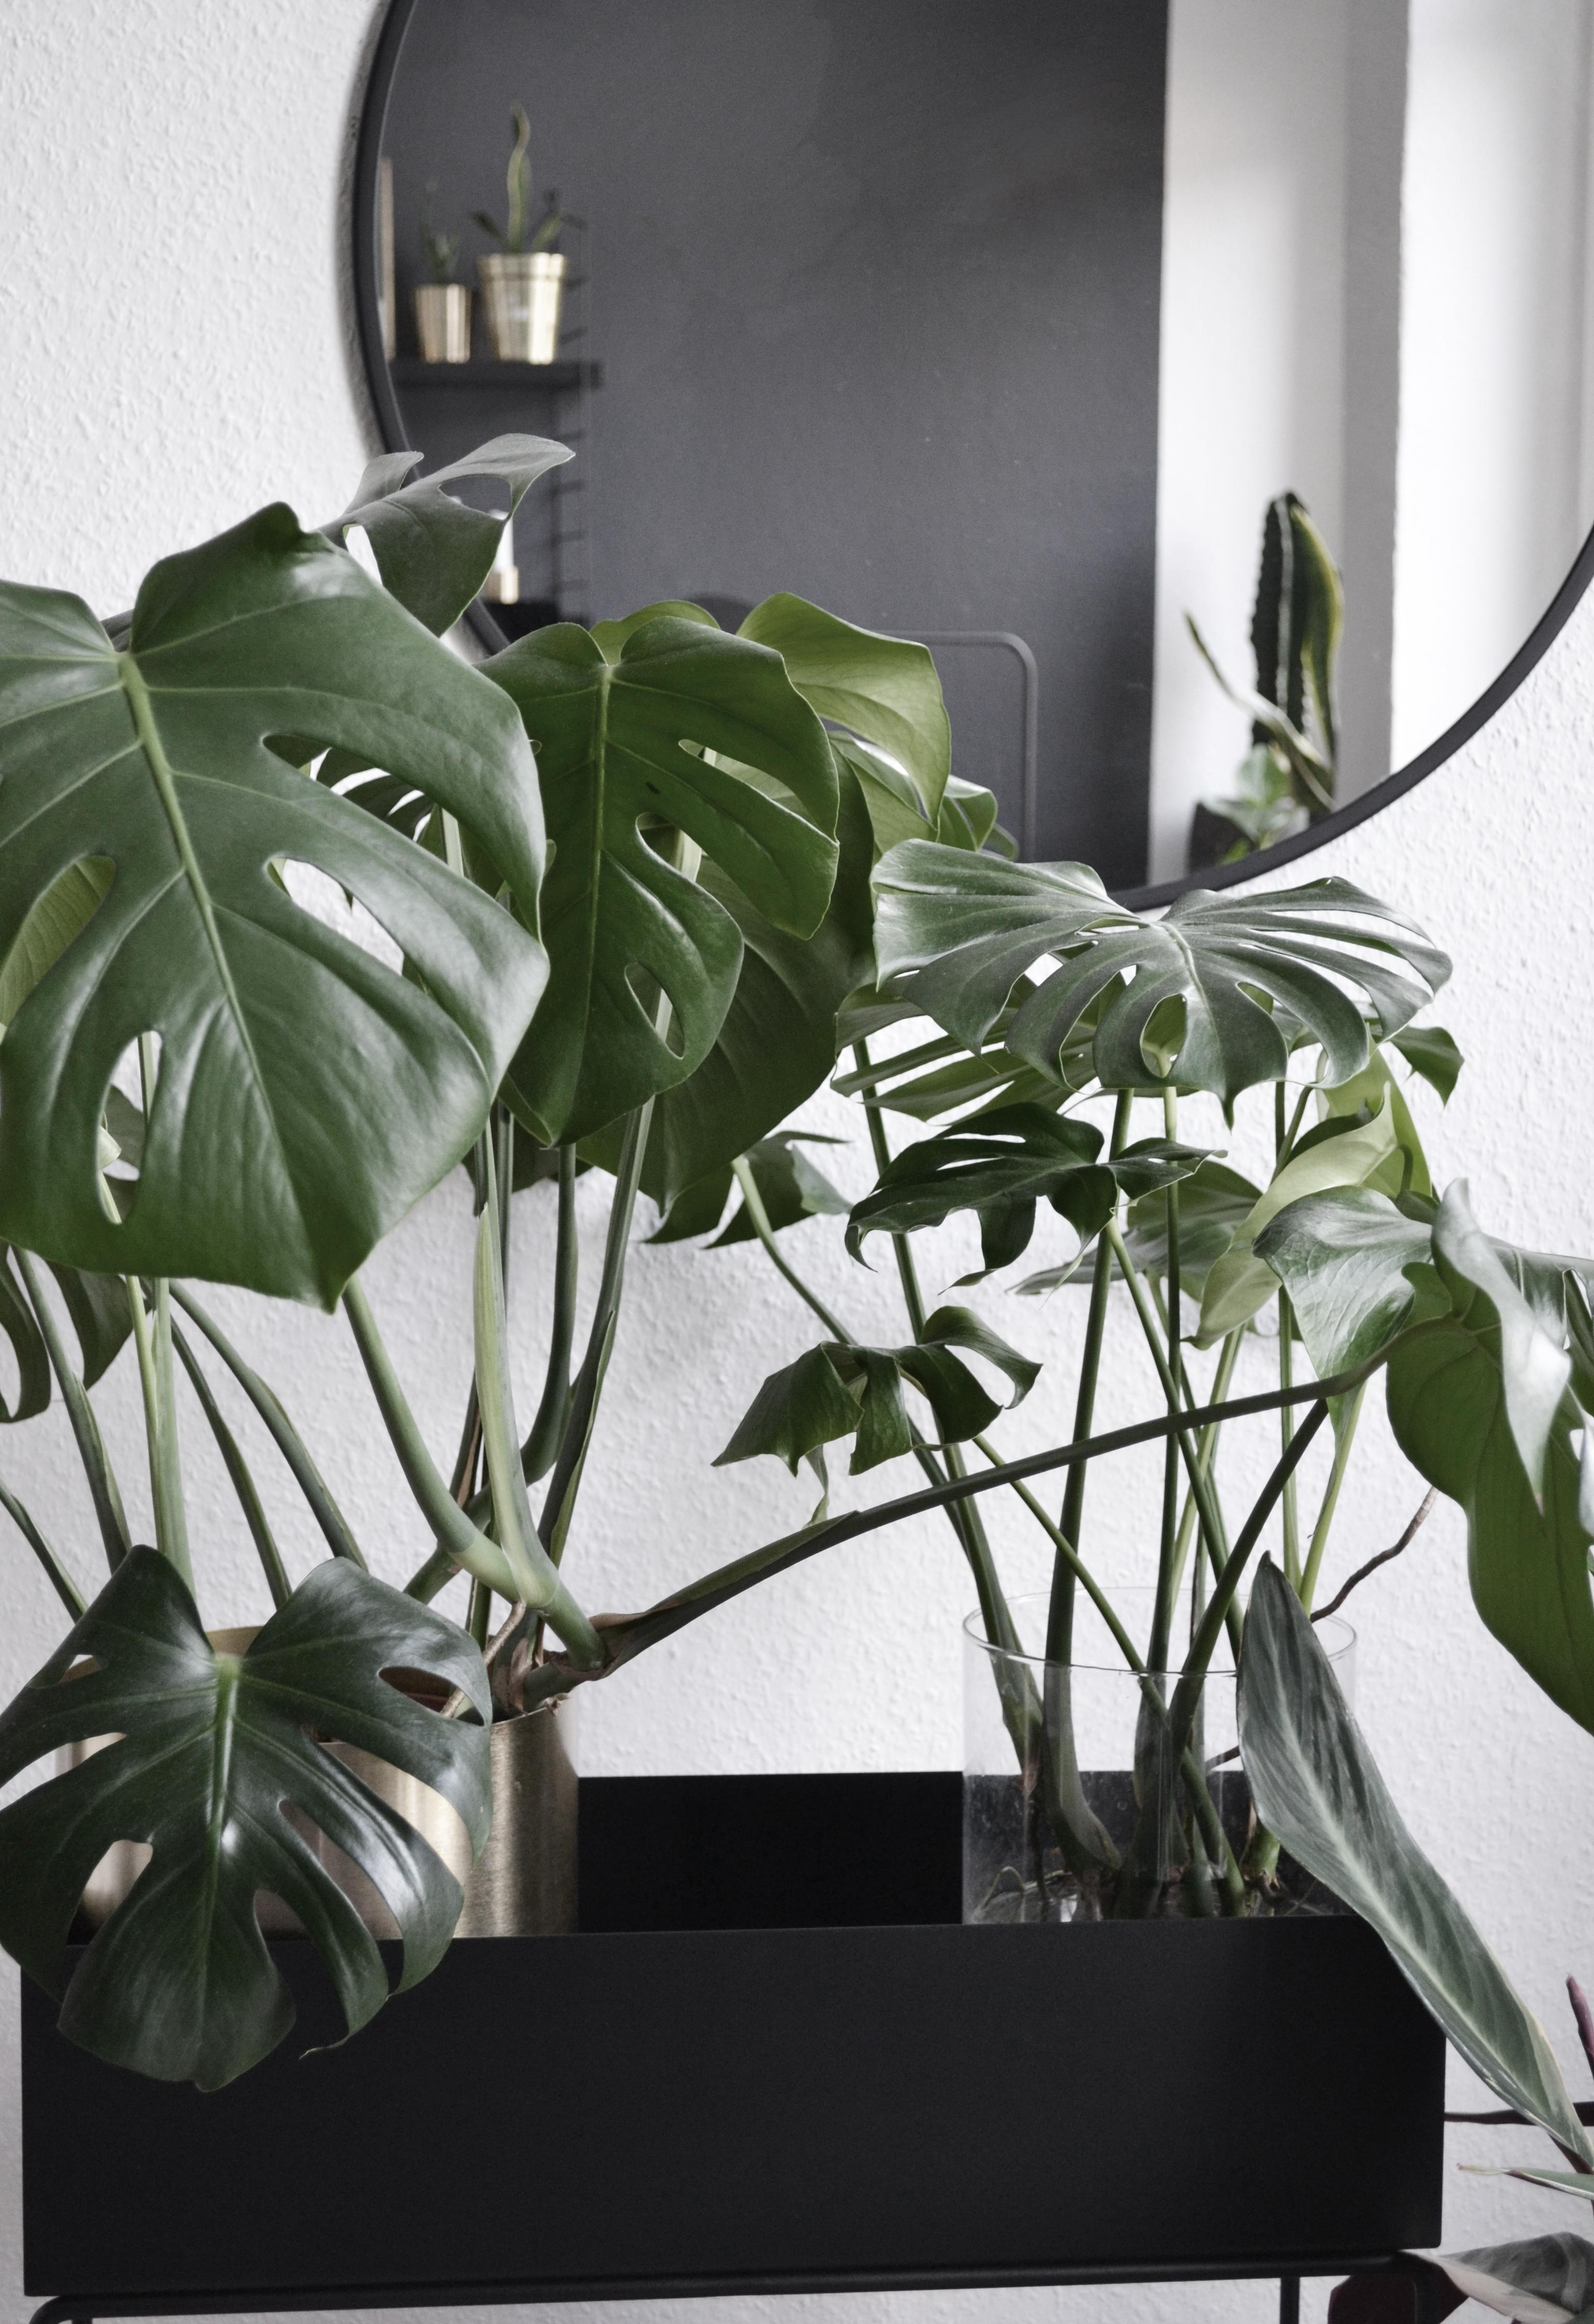 #monstera #pflanzenliebe #plantbox